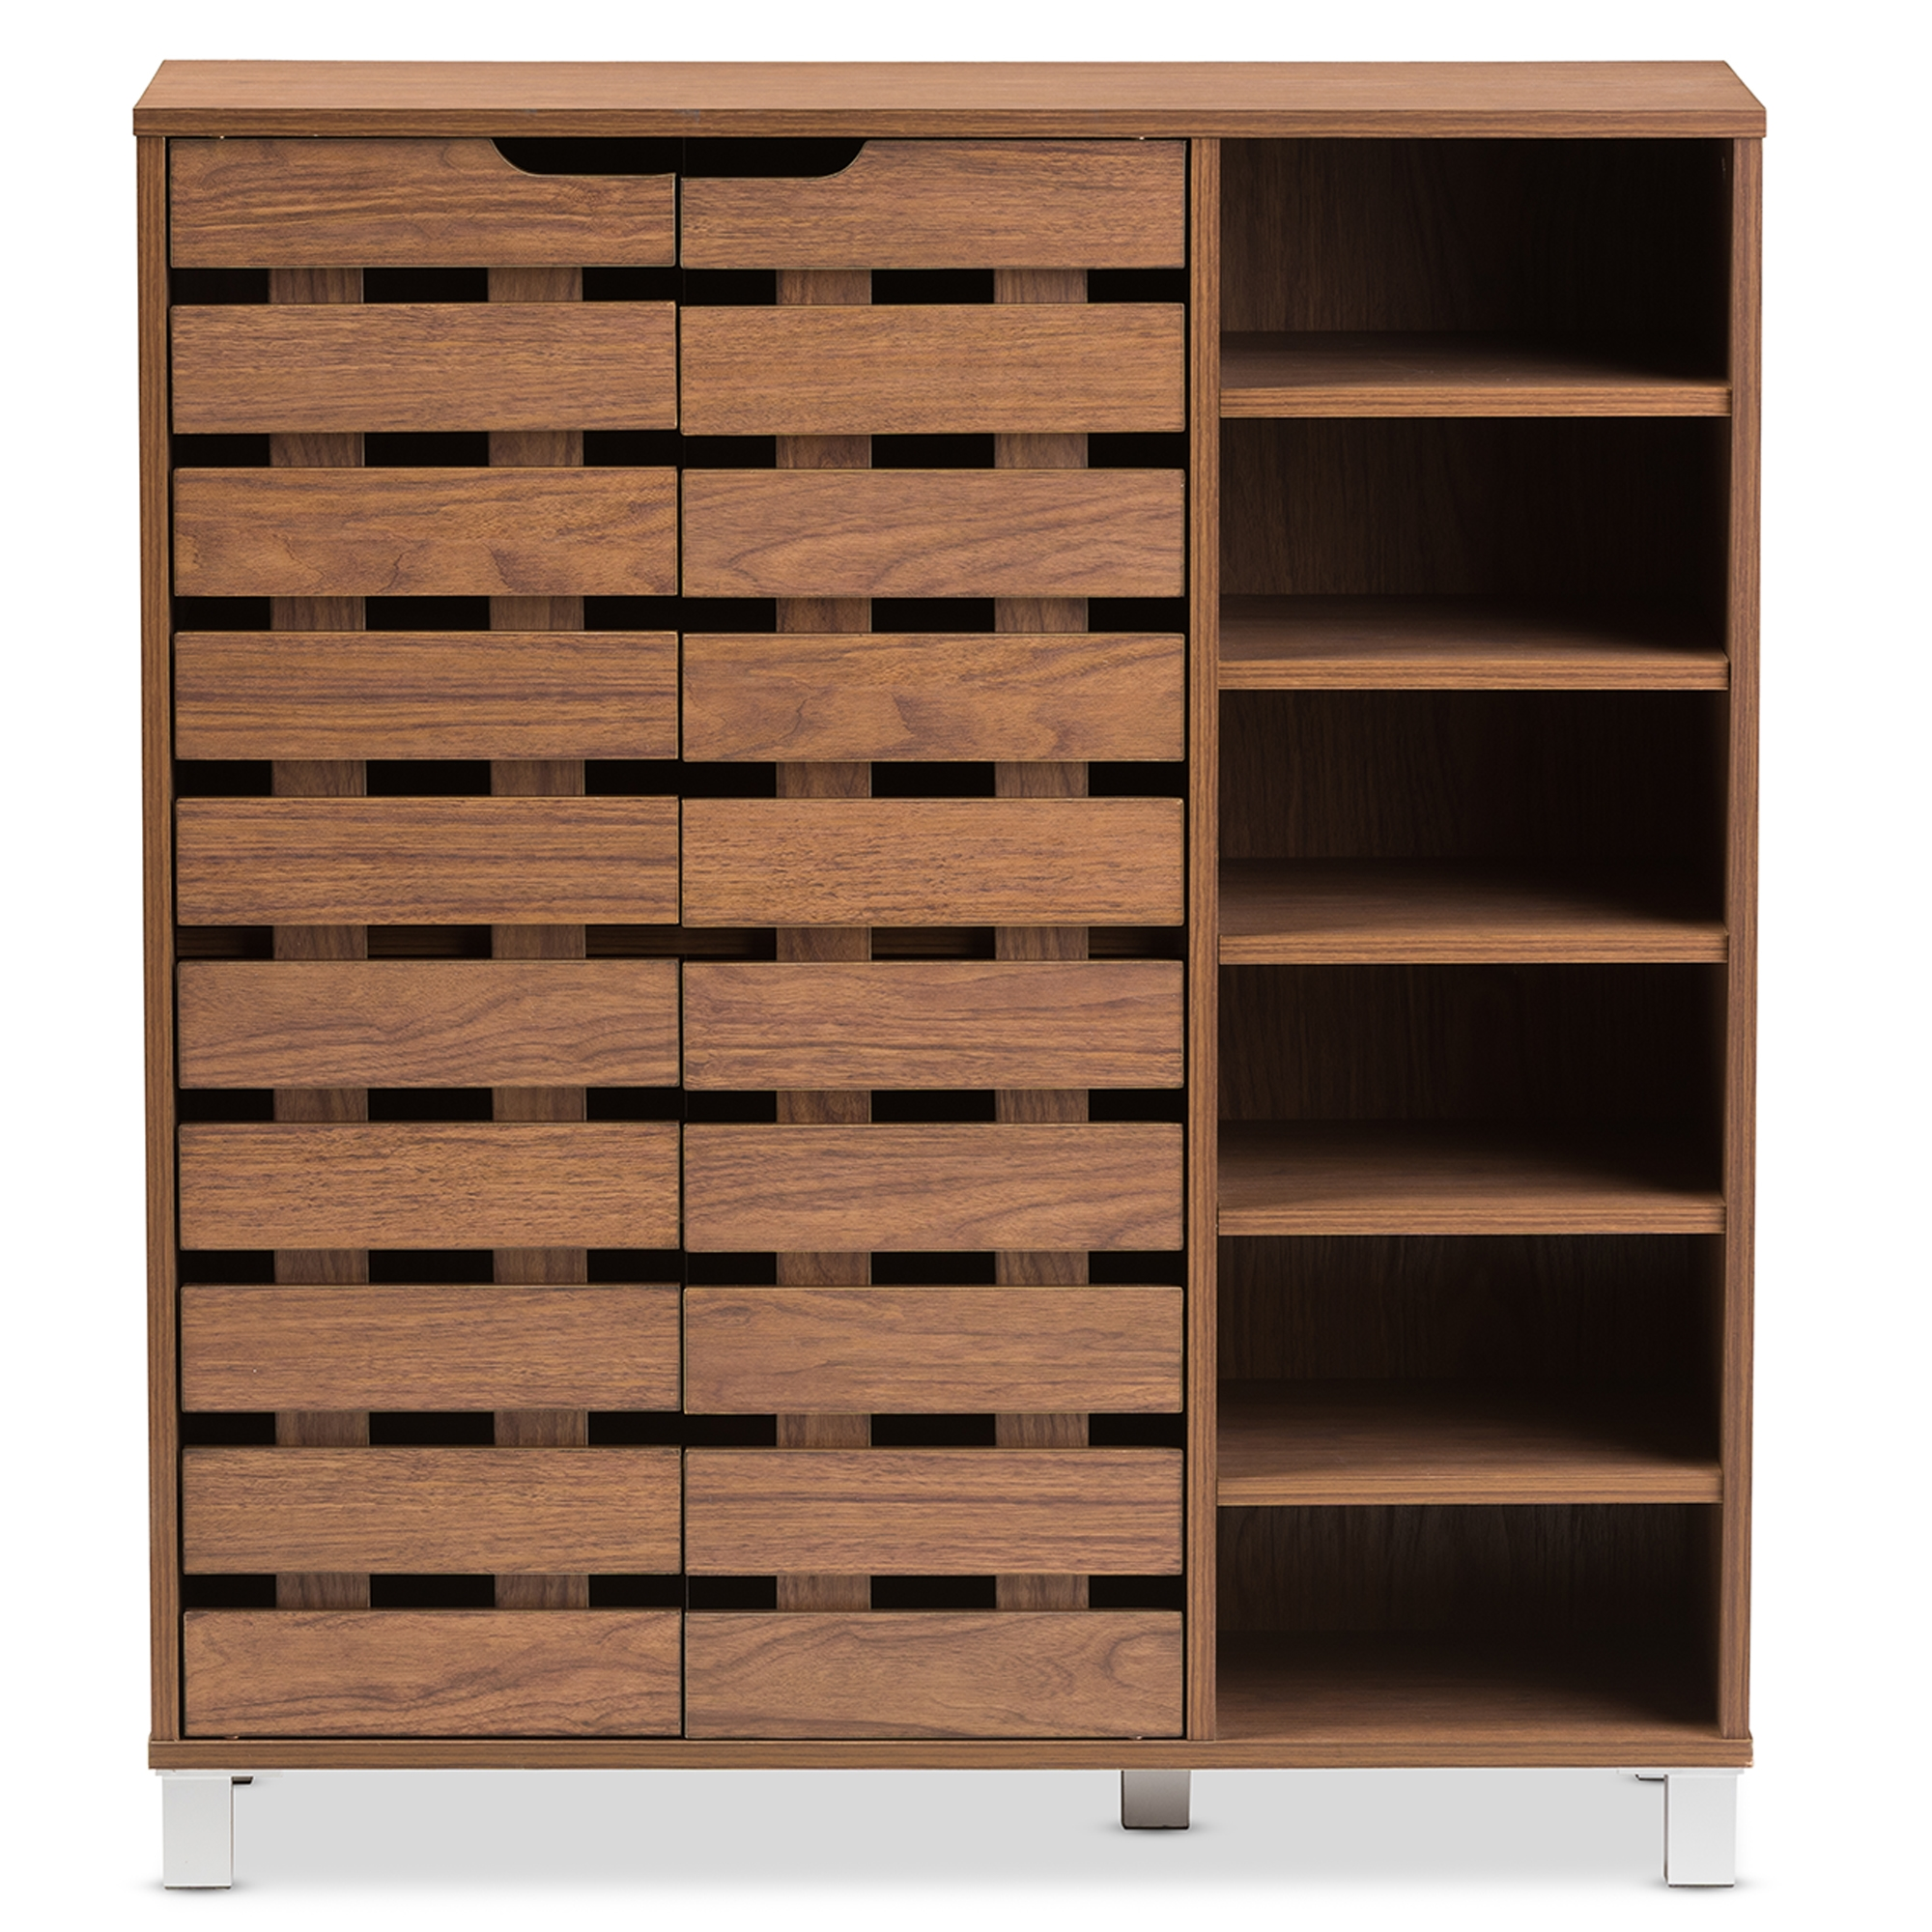 Baxton Studio | Wholesale Display Shelves | Wholesale Living Room Furniture  | Wholesale Furniture